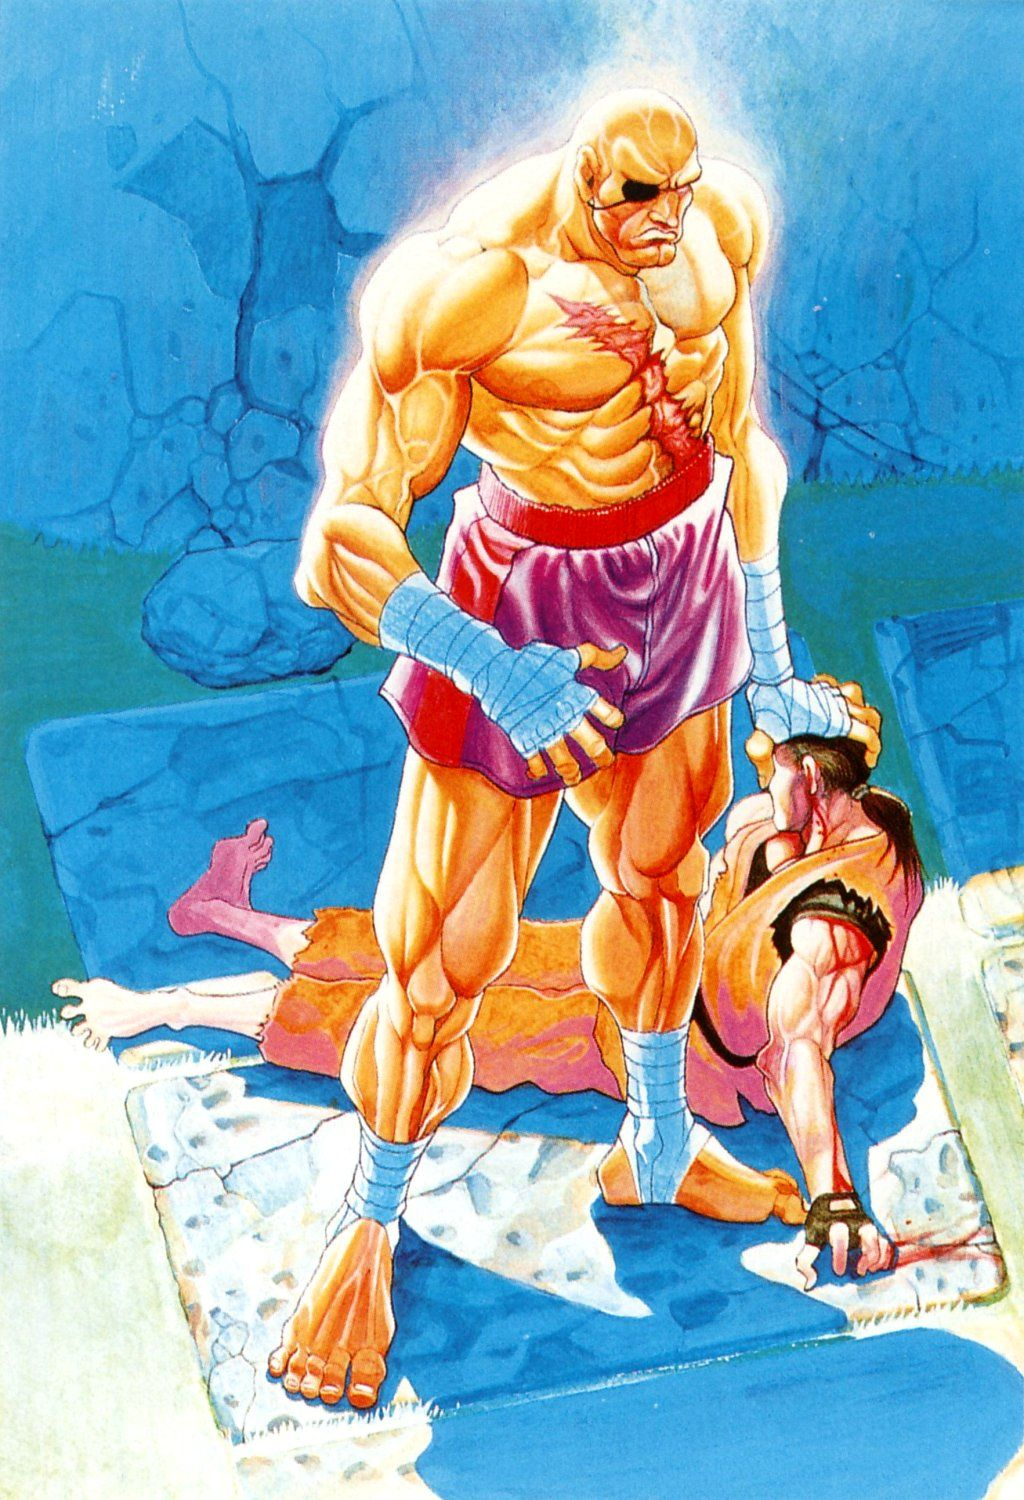 Street fighter characters dan street fighter image - Street Fighter Ii Sagat And Dan